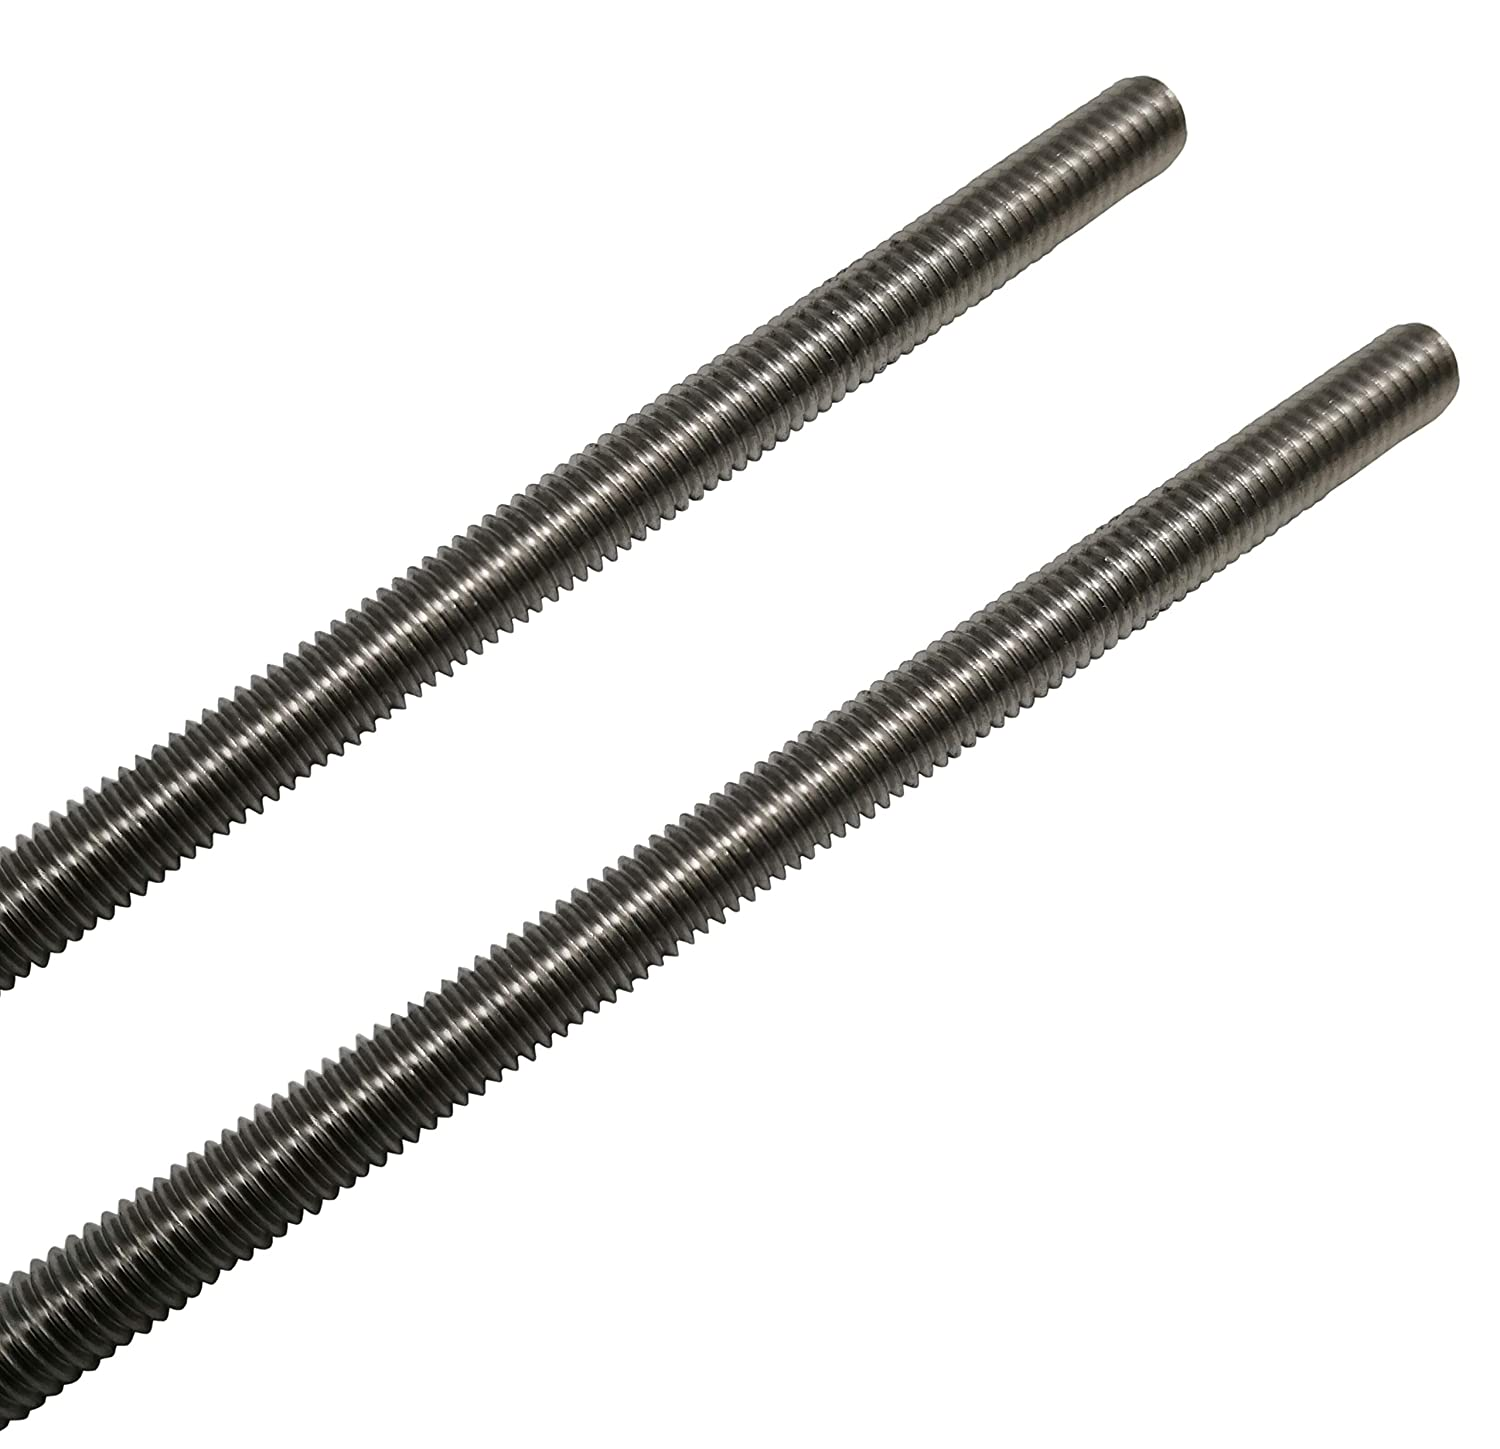 2 Pack Right Hand Threads M4 x 200mm Fully Threaded Rod 304 Stainless Steel